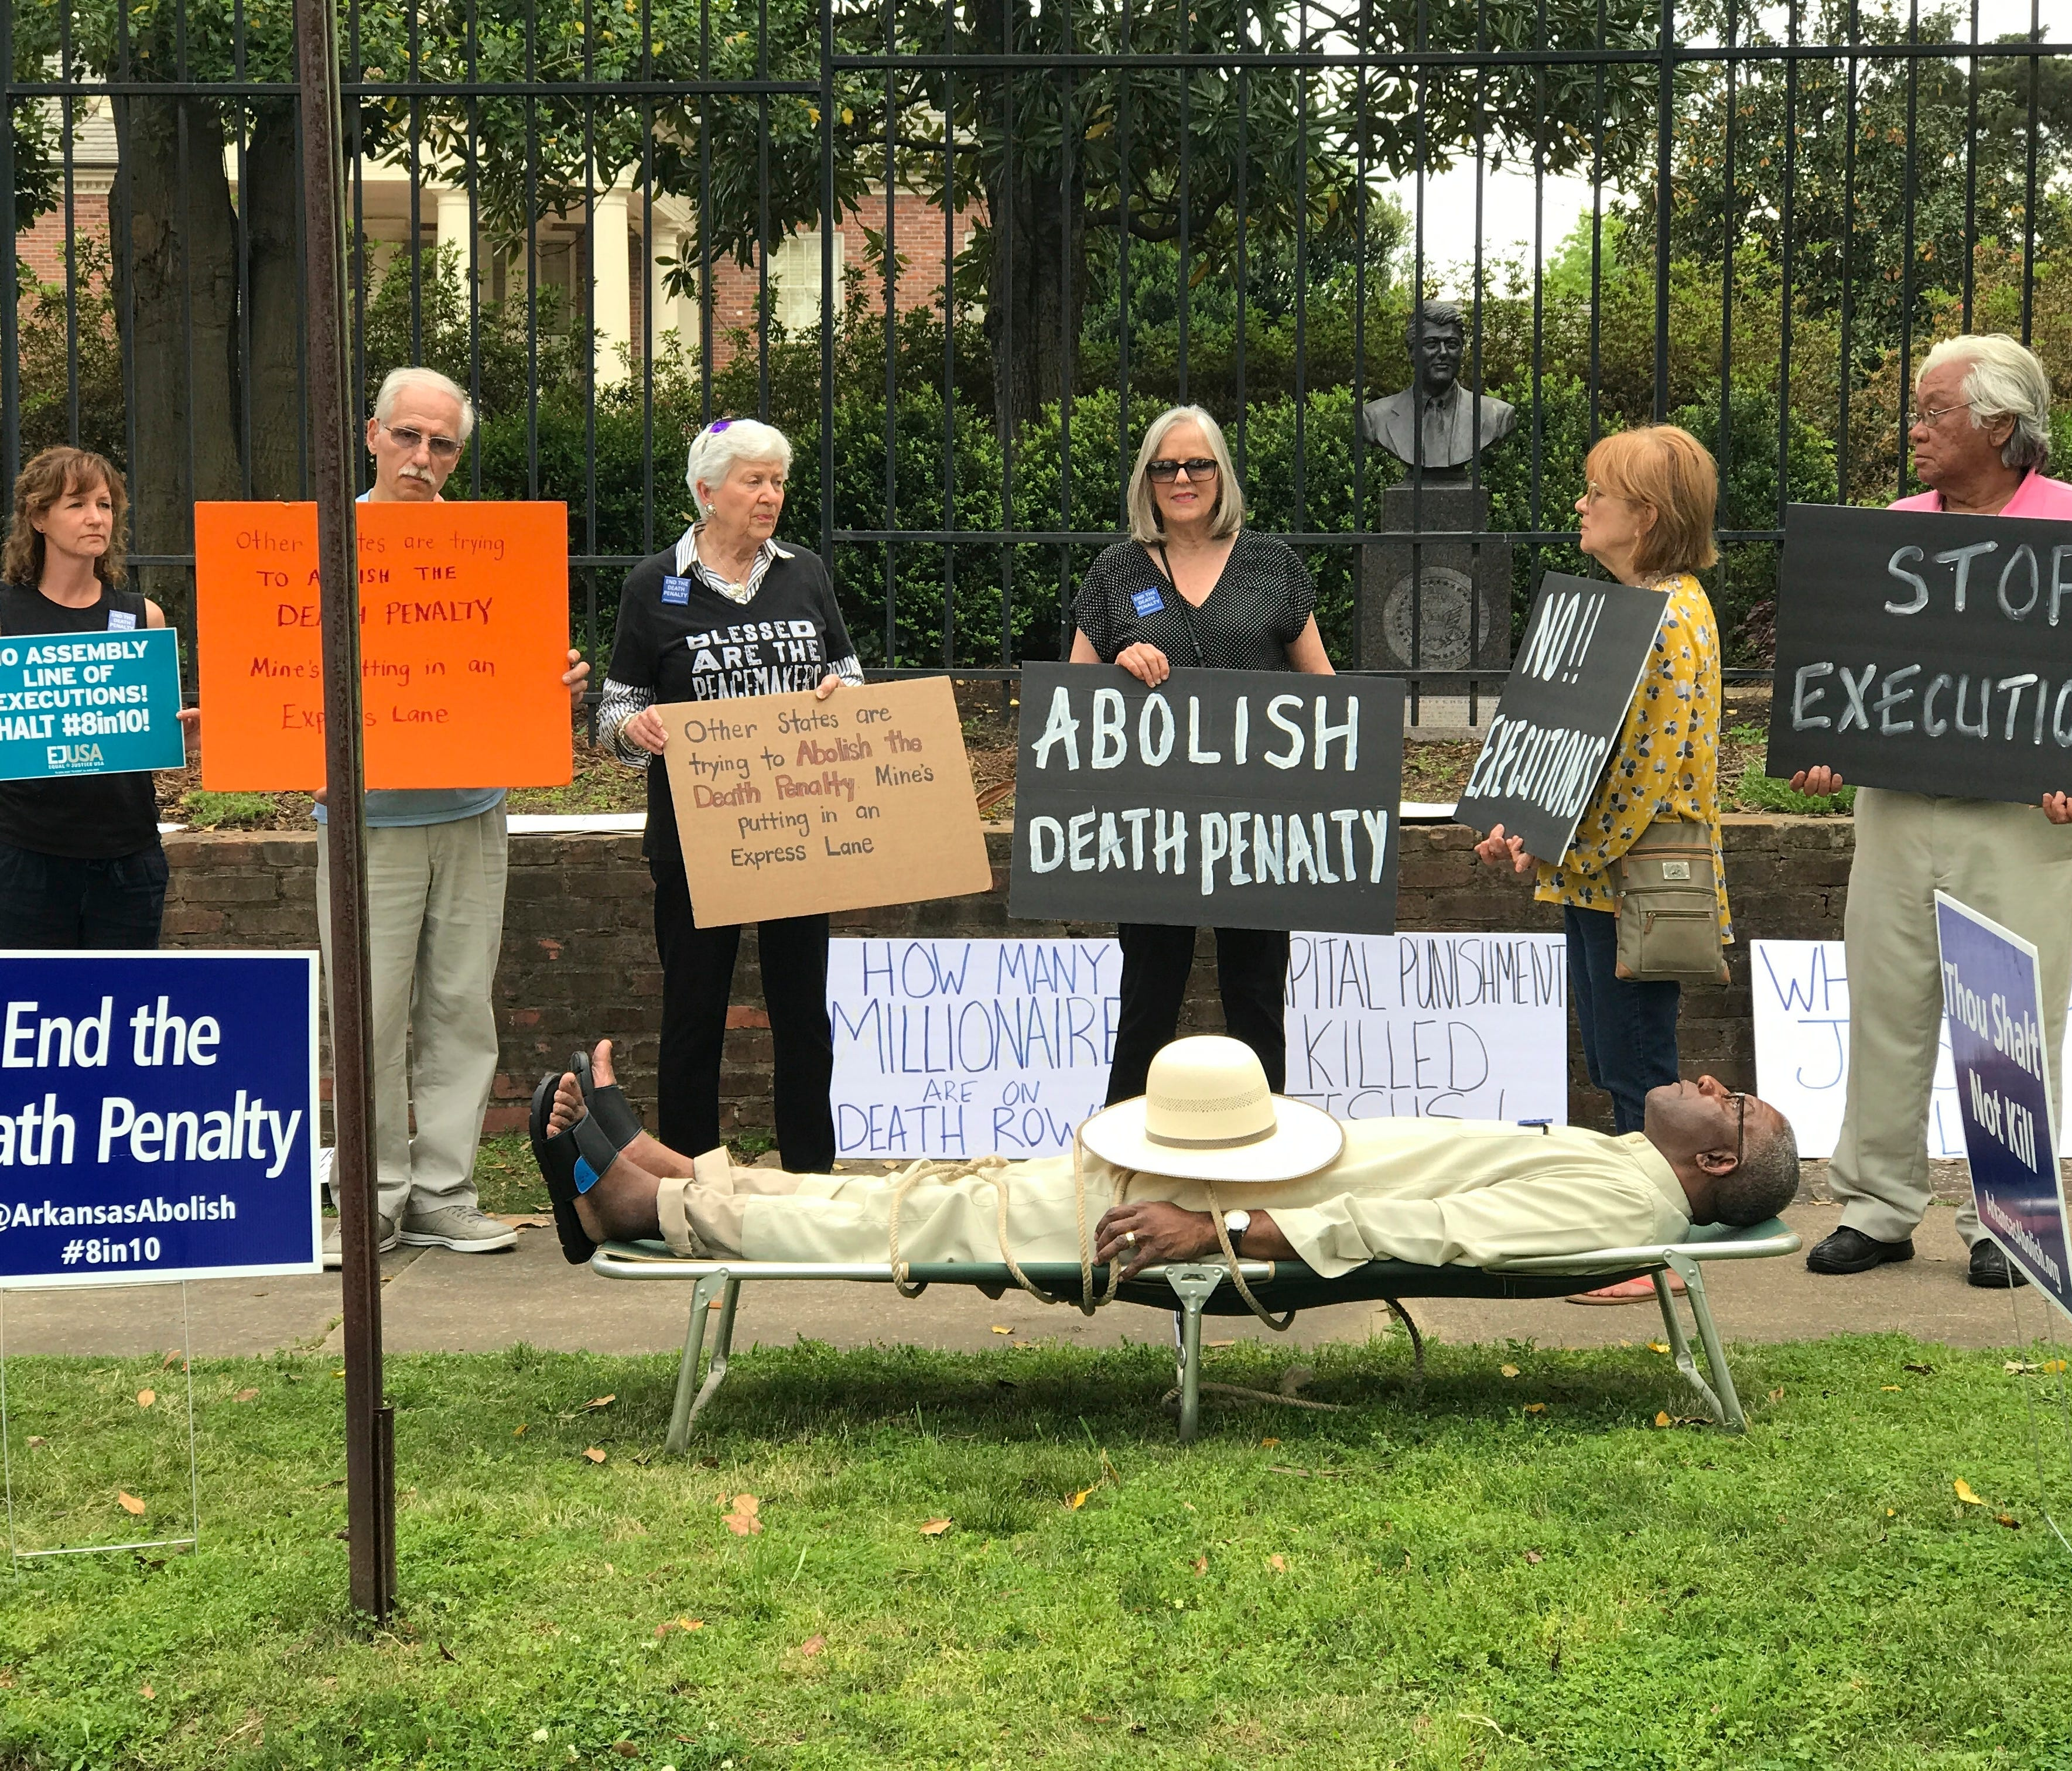 Judge Wendell Griffen of Arkansas' 6th Judicial Circuit Court takes part April 14, 2017, in an anti-death penalty demonstration outside the Governor's Mansion in Little Rock, Ark.